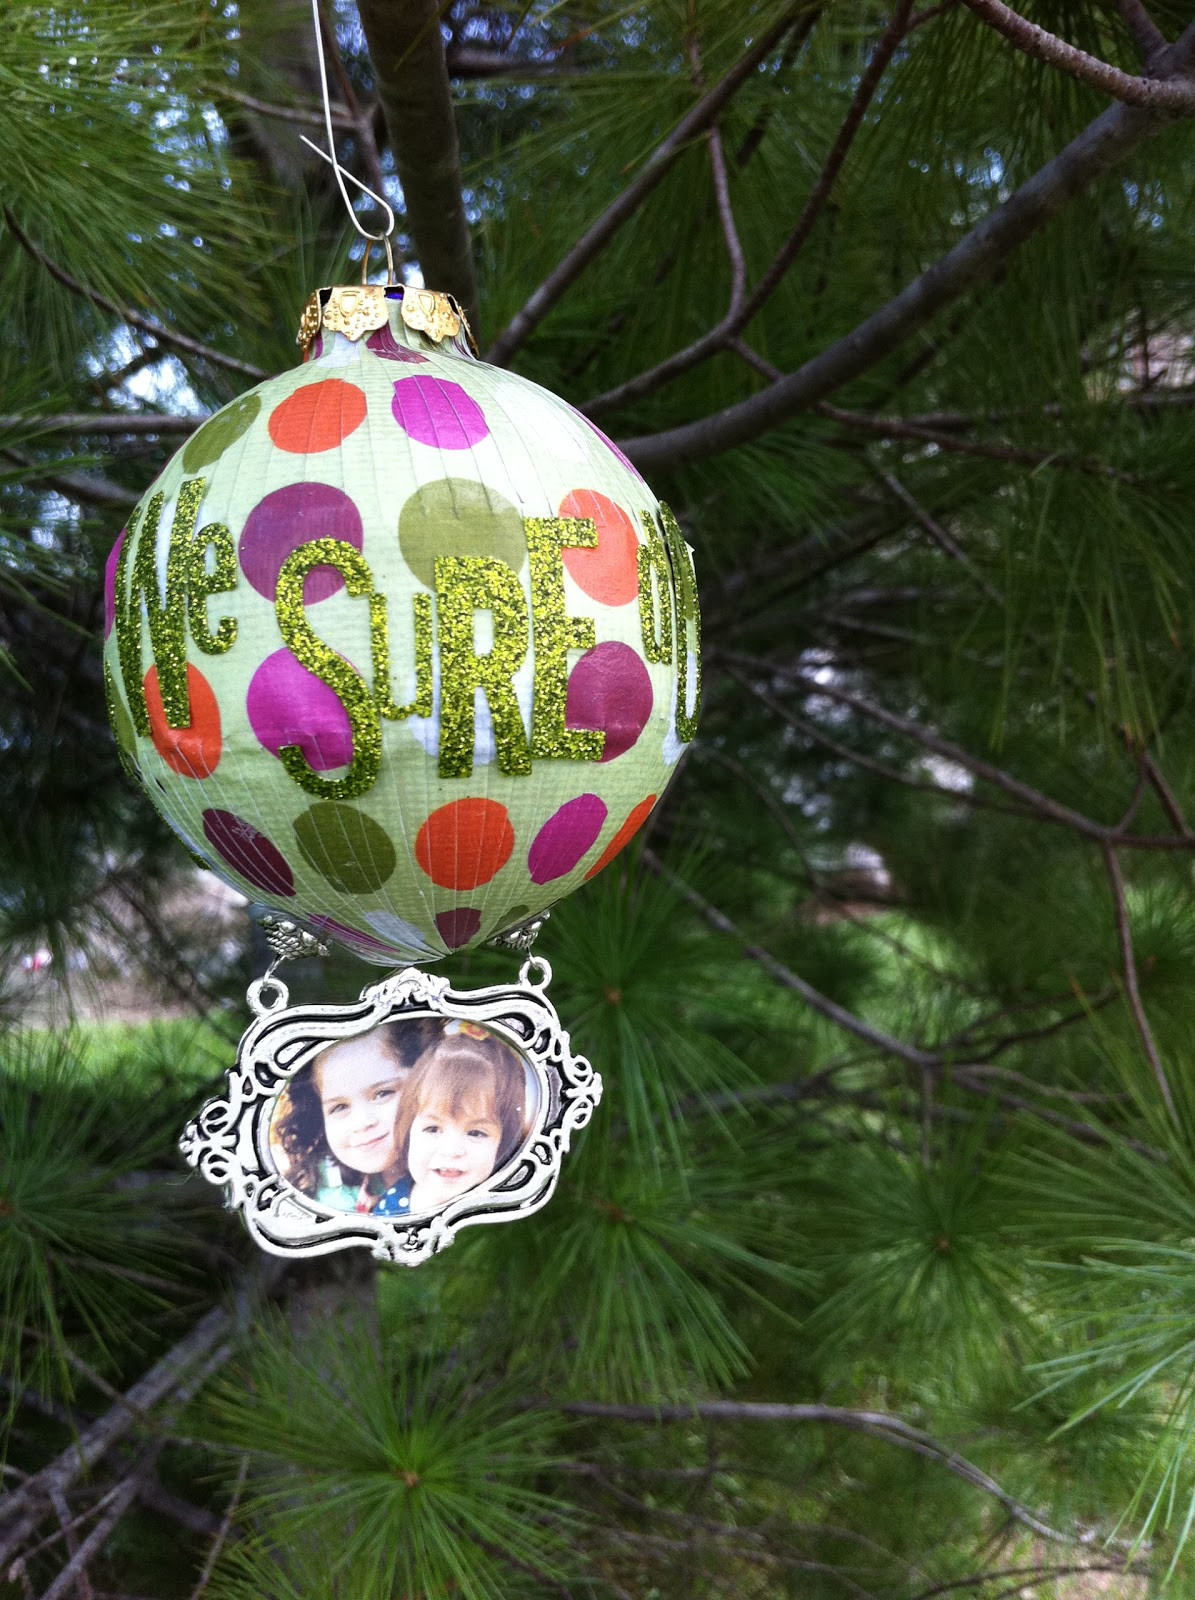 Best ideas about DIY Christmas Ball Ornaments . Save or Pin Holiday Gift Guide A menagerie of ideas Now.